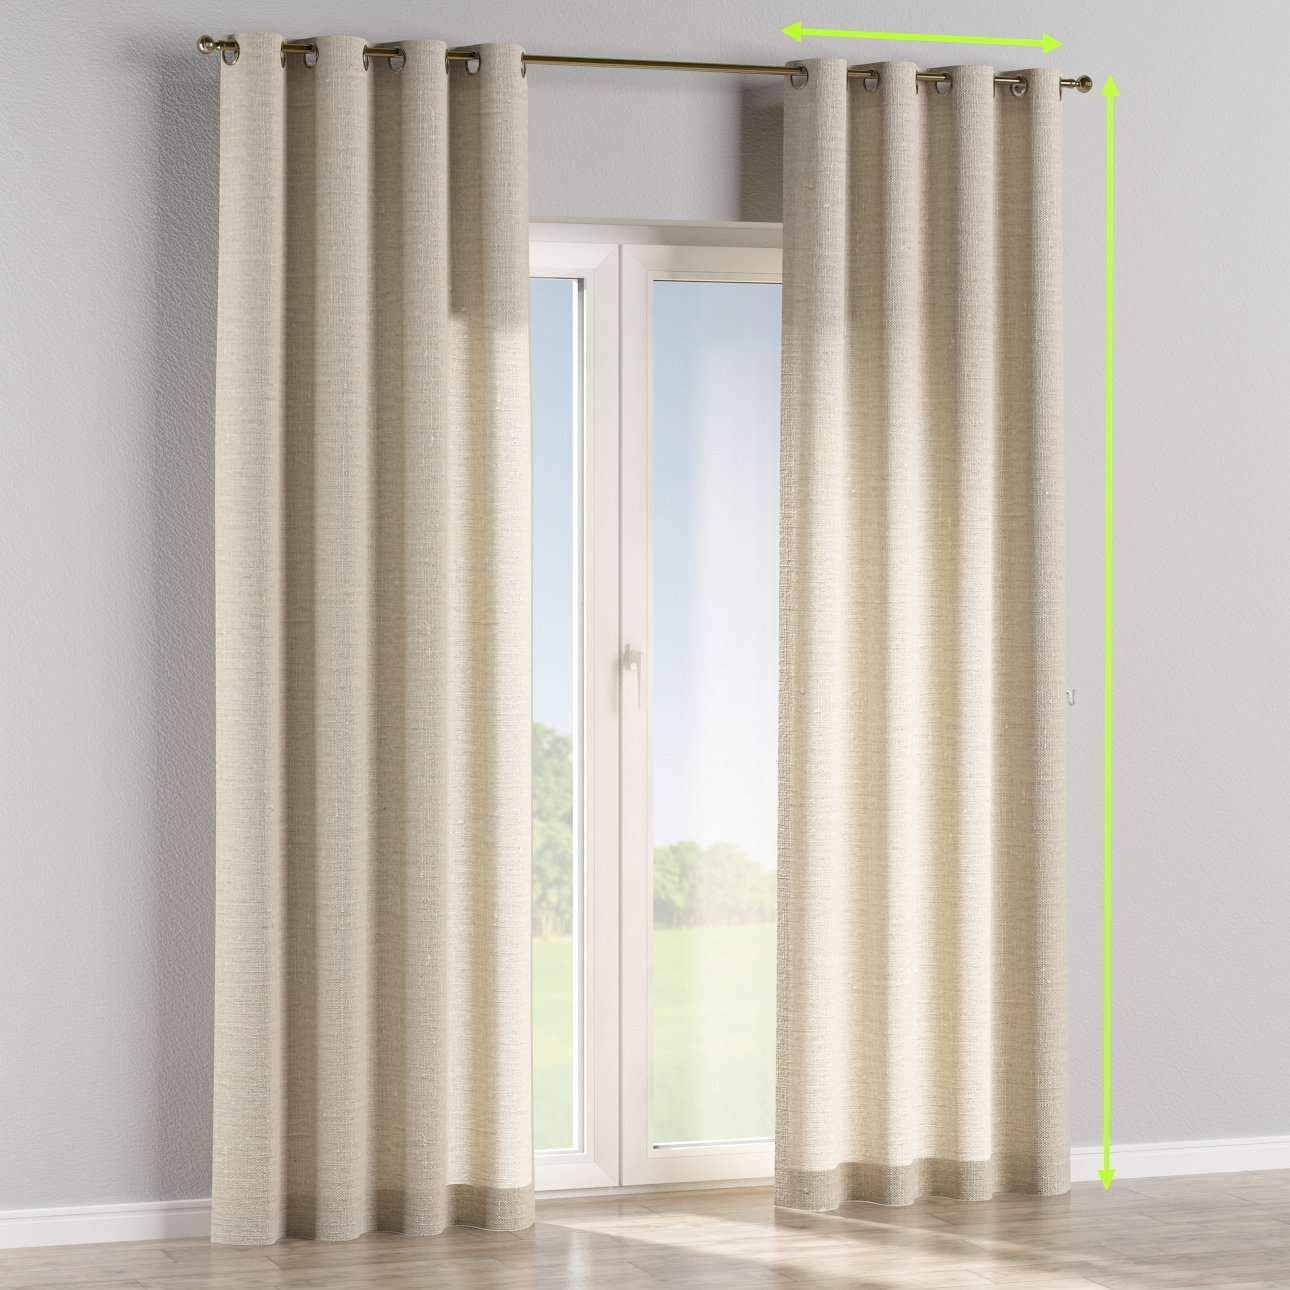 Eyelet curtains in collection Linen, fabric: 392-05